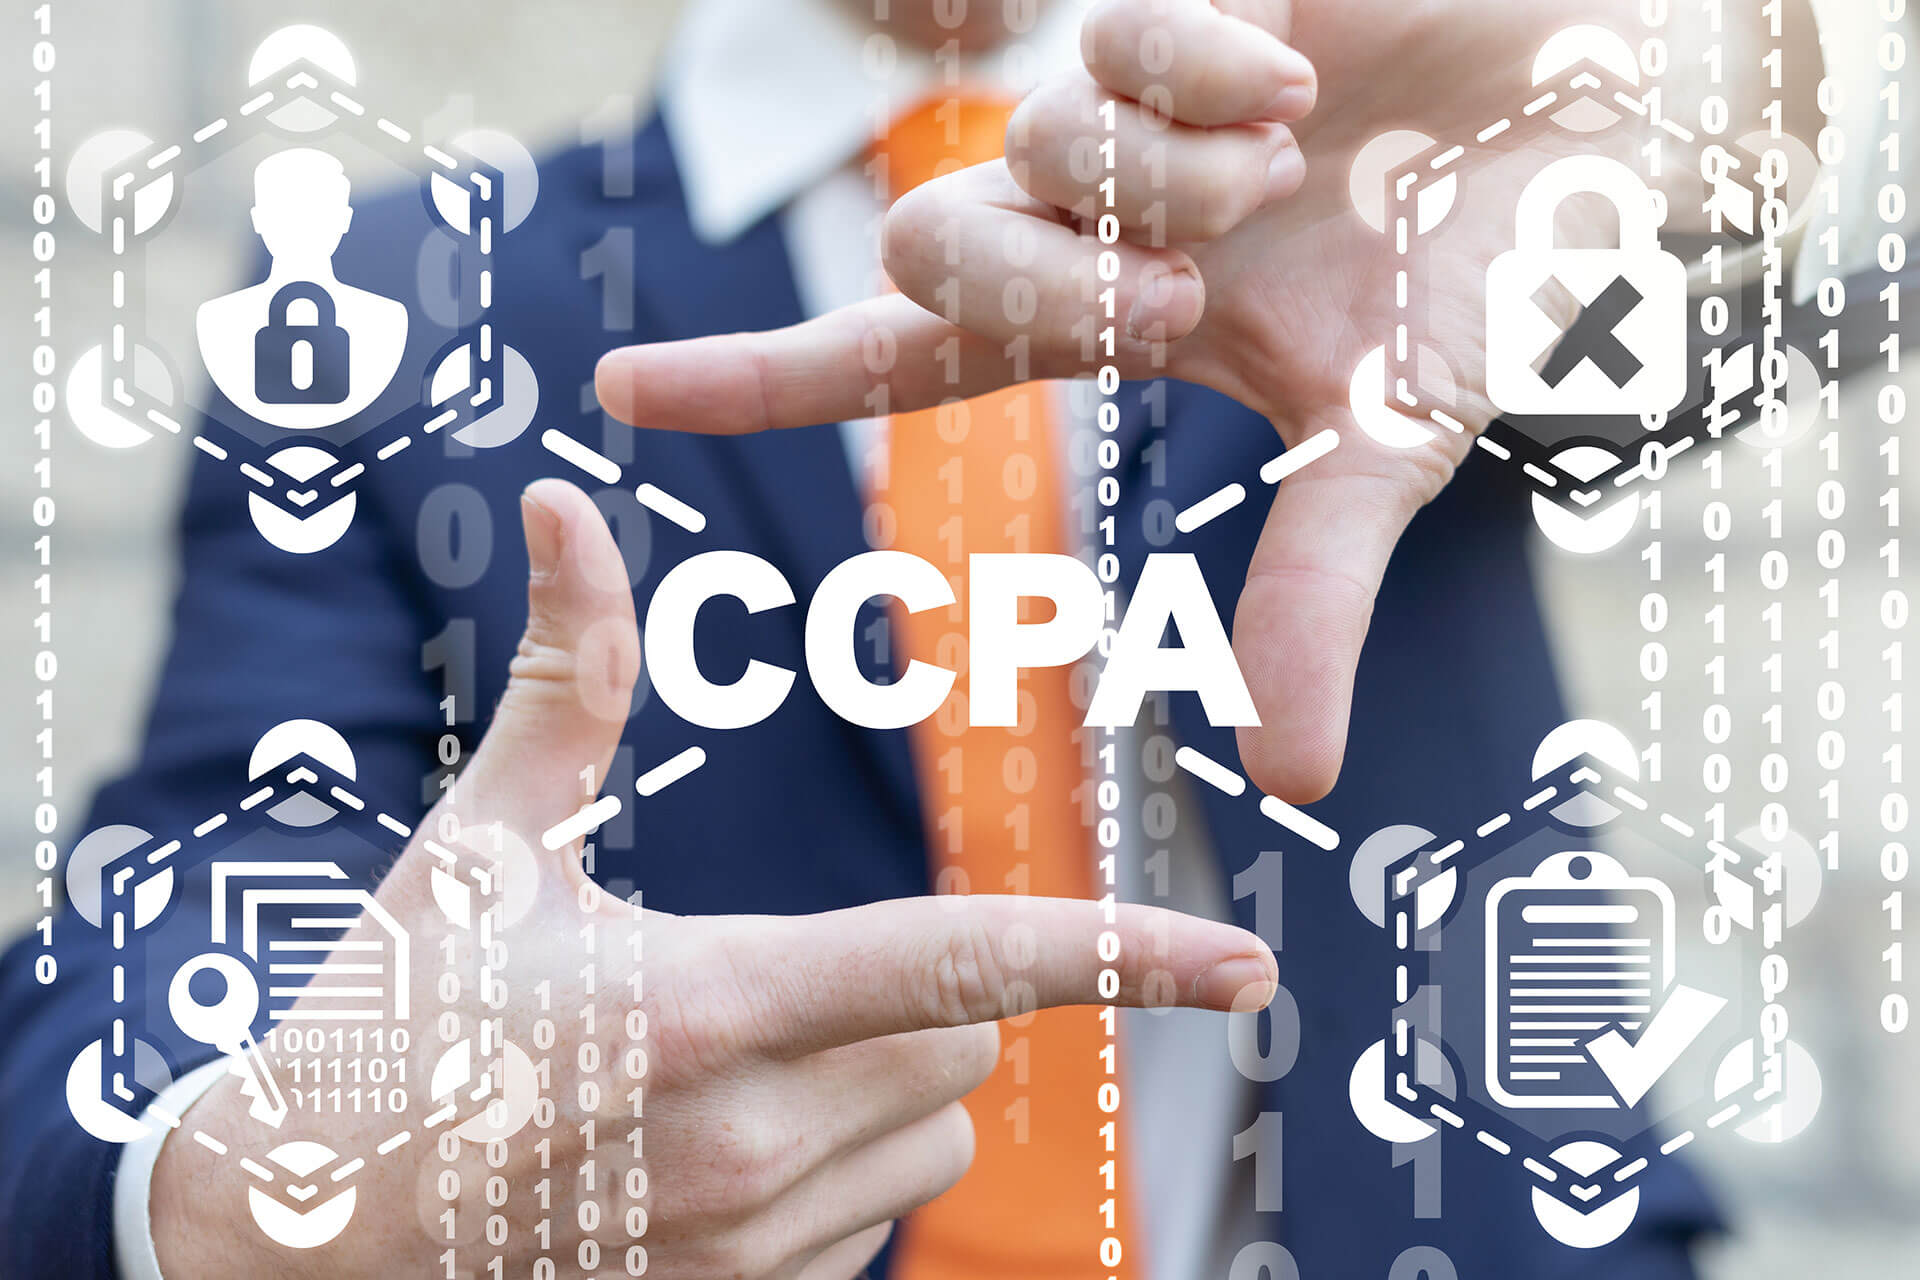 CCPA Survey shows that companies are not ready for compliance